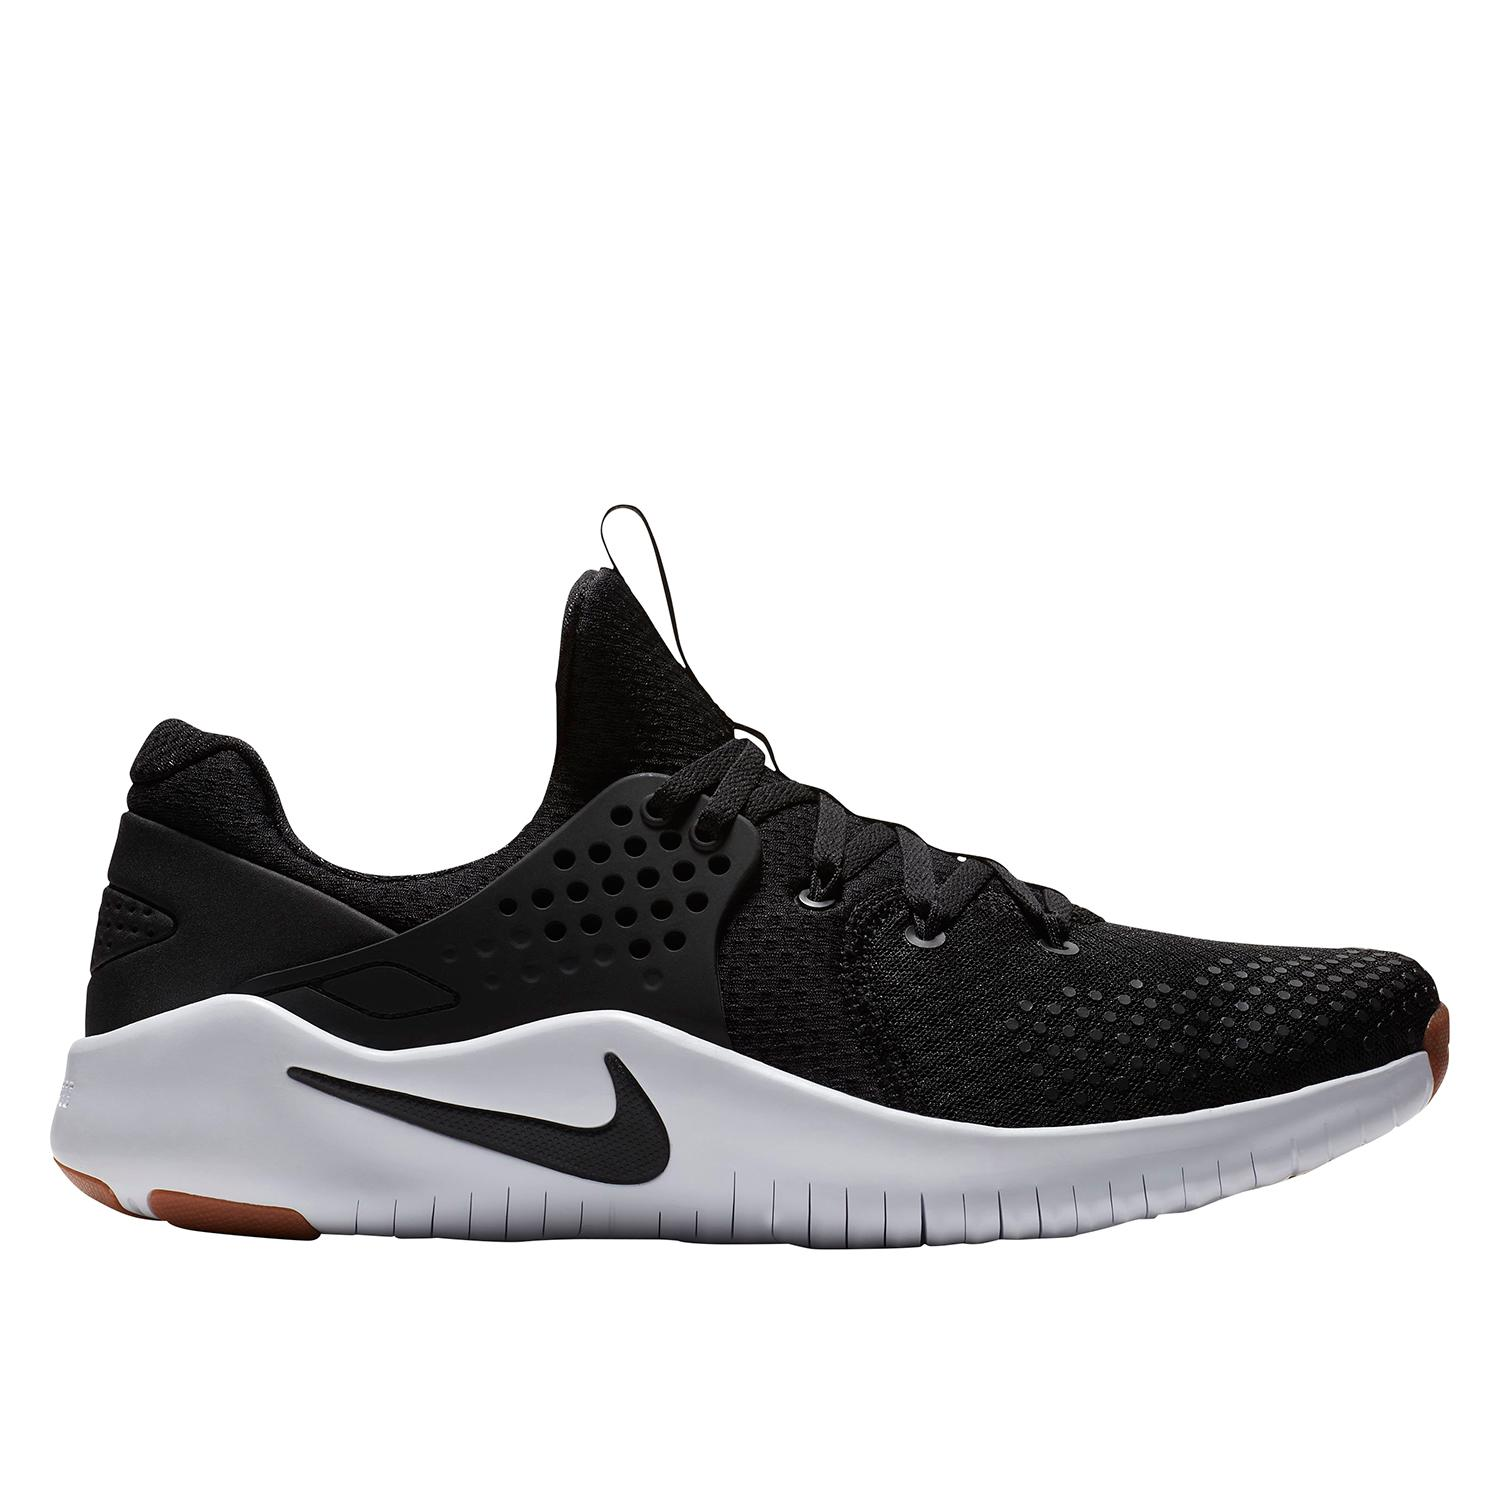 san francisco best wholesaler newest collection authentic nike free 5.0 tr fit 4 intersport 927ae af952